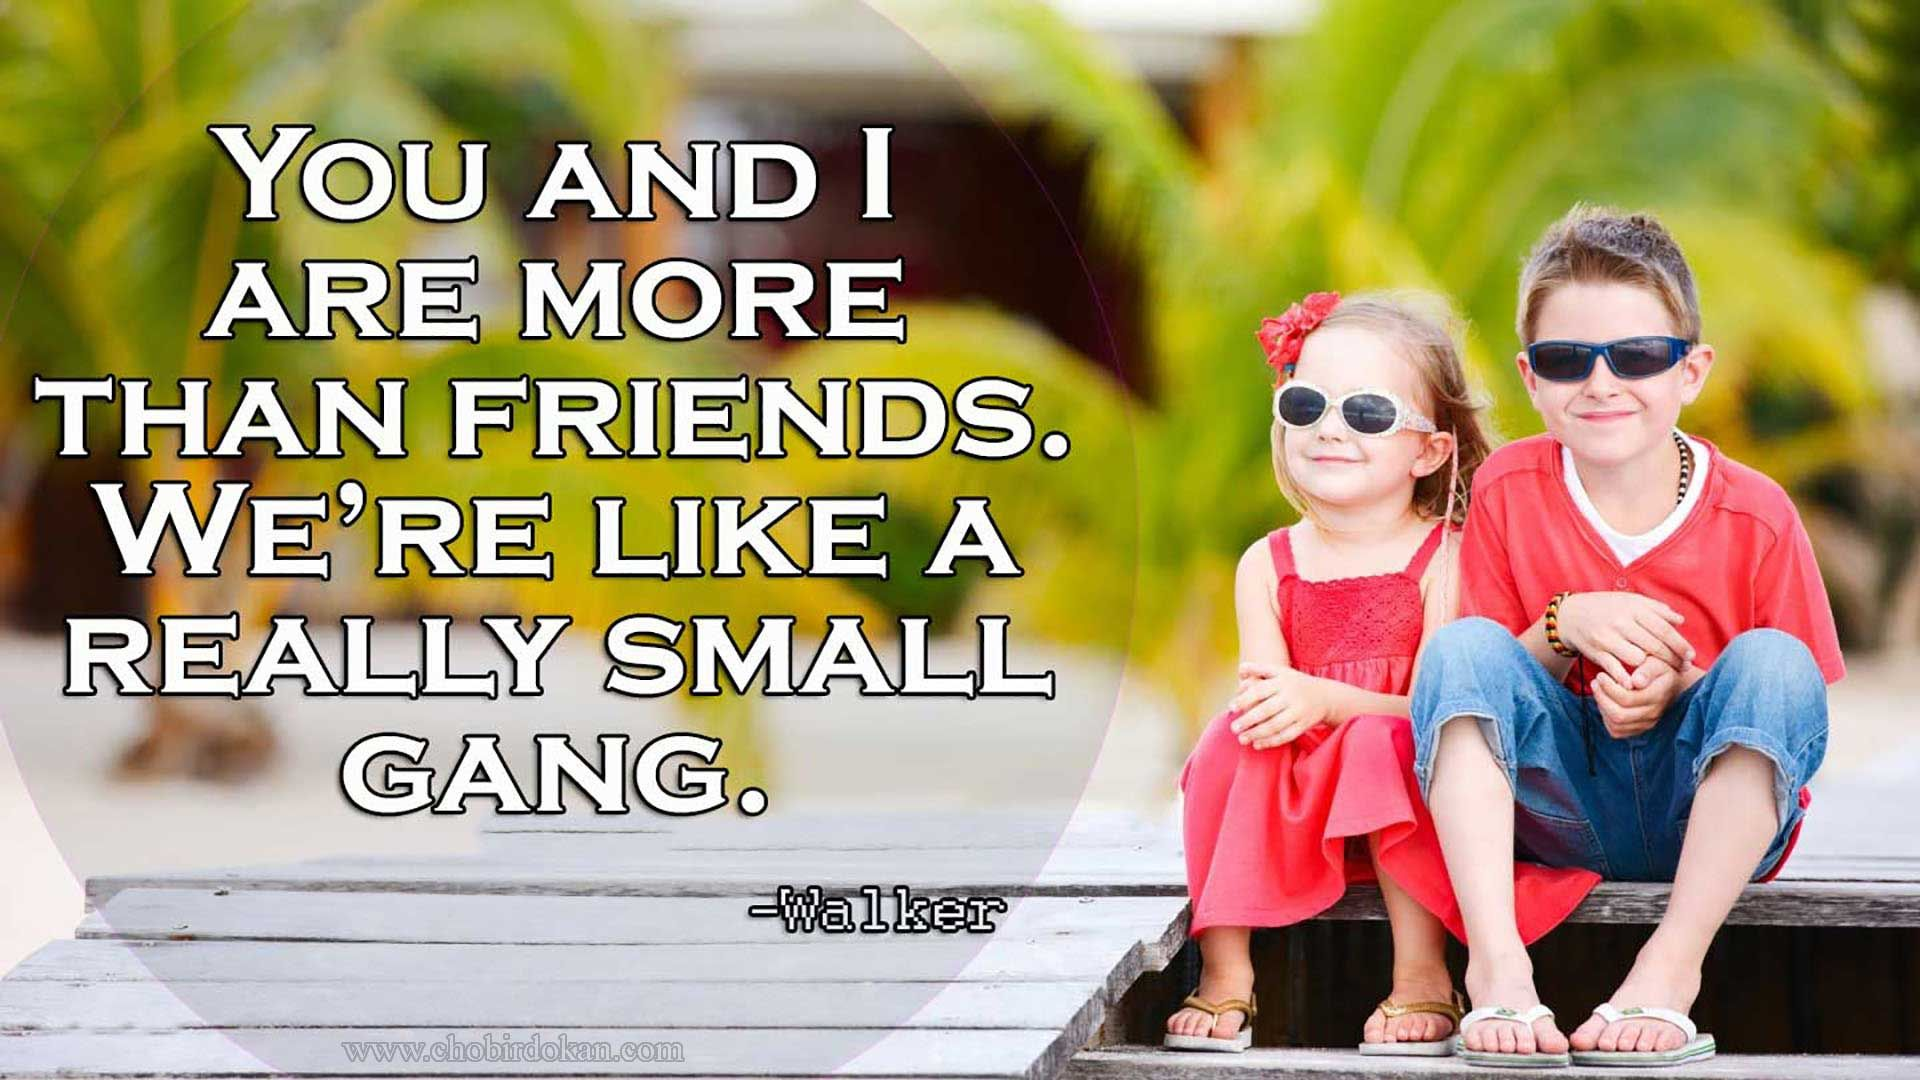 Wallpaper Friendship Quotes Hd Wallpaper 19201080 Girl Friendship Quotes Friendship Day Quotes Friendship Quotes